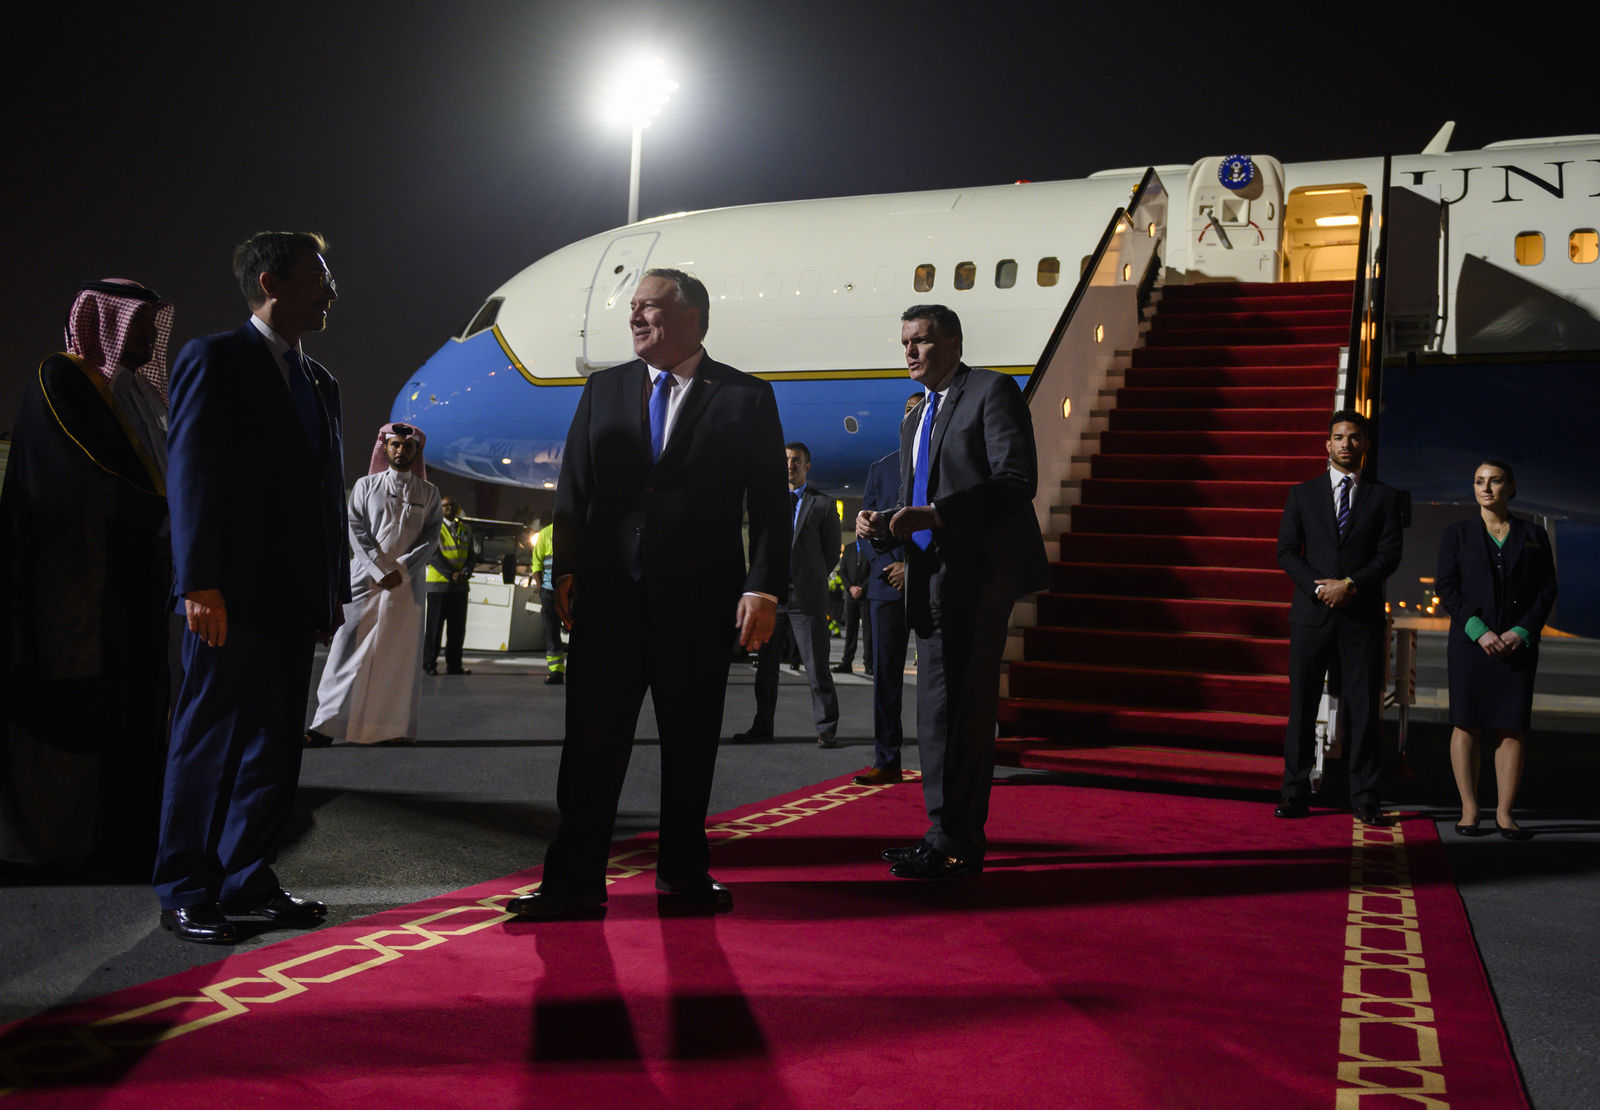 U.S. Secretary of State Mike Pompeo, prepares to depart from Doha, Qatar, Sunday, Jan. 13, 2019. (Andrew Caballero-Reynolds/Pool Photo via AP)